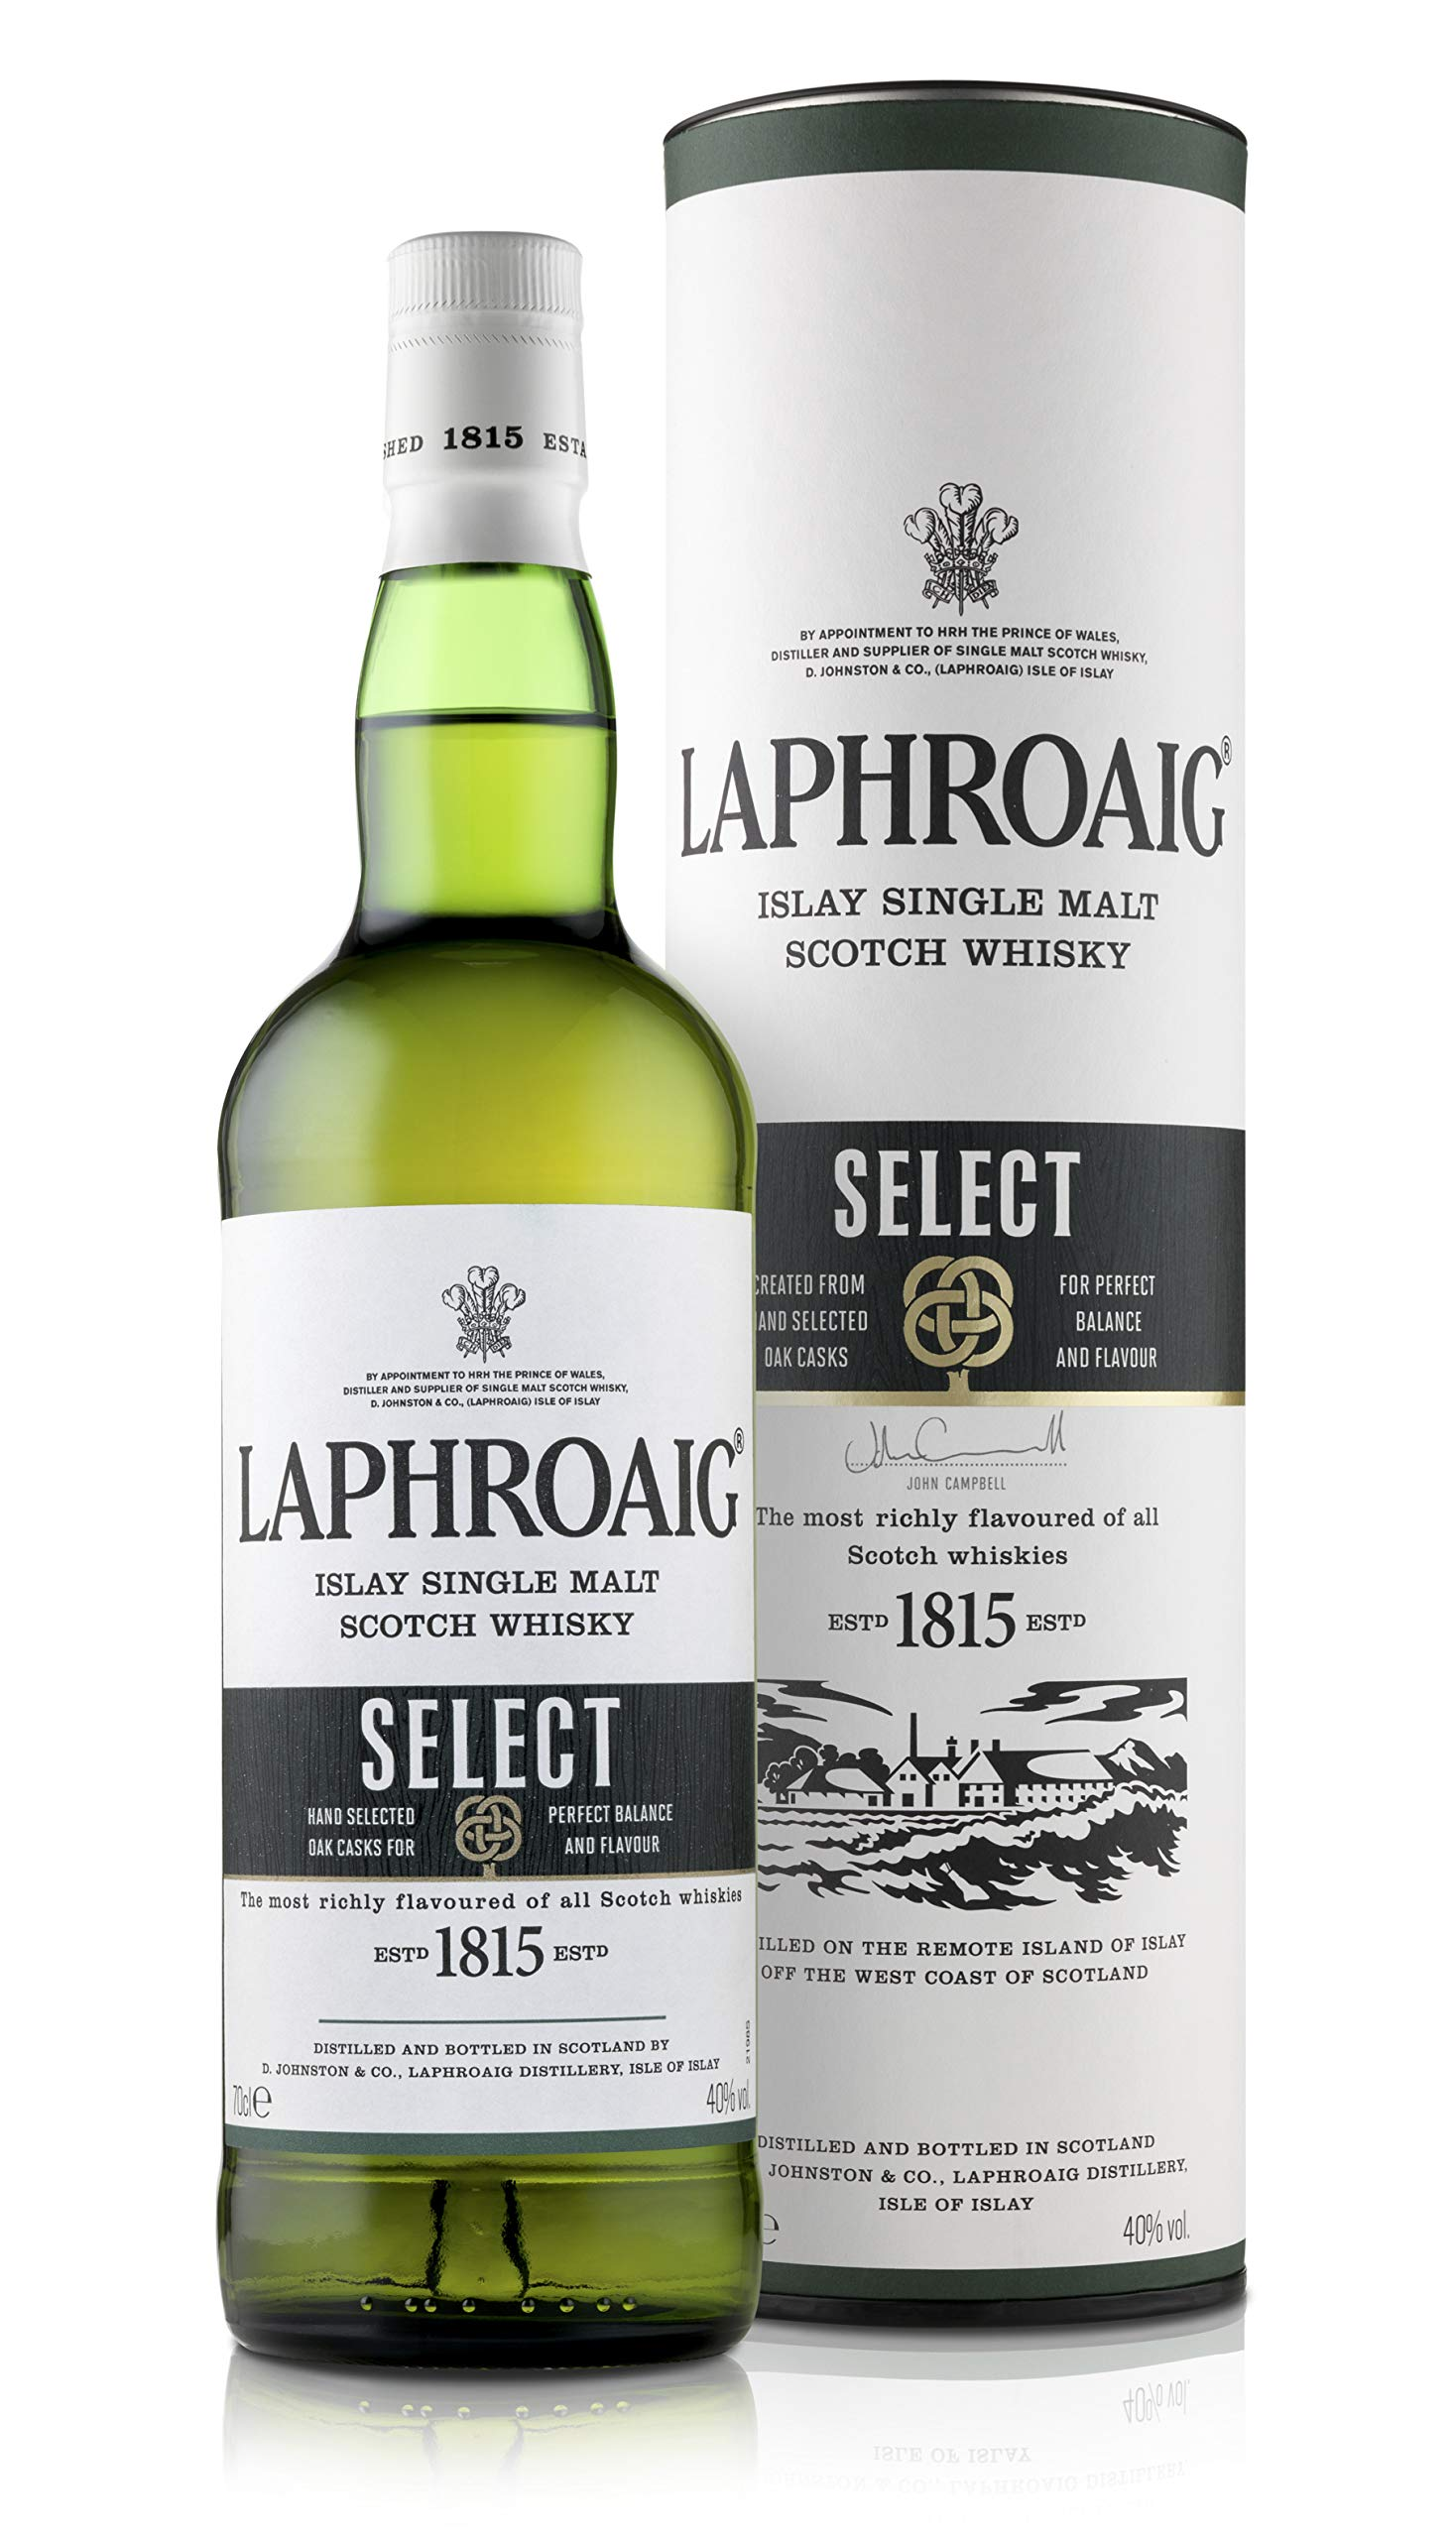 Laphroaig Select Islay Single Malt Scotch Whisky, 70 cl